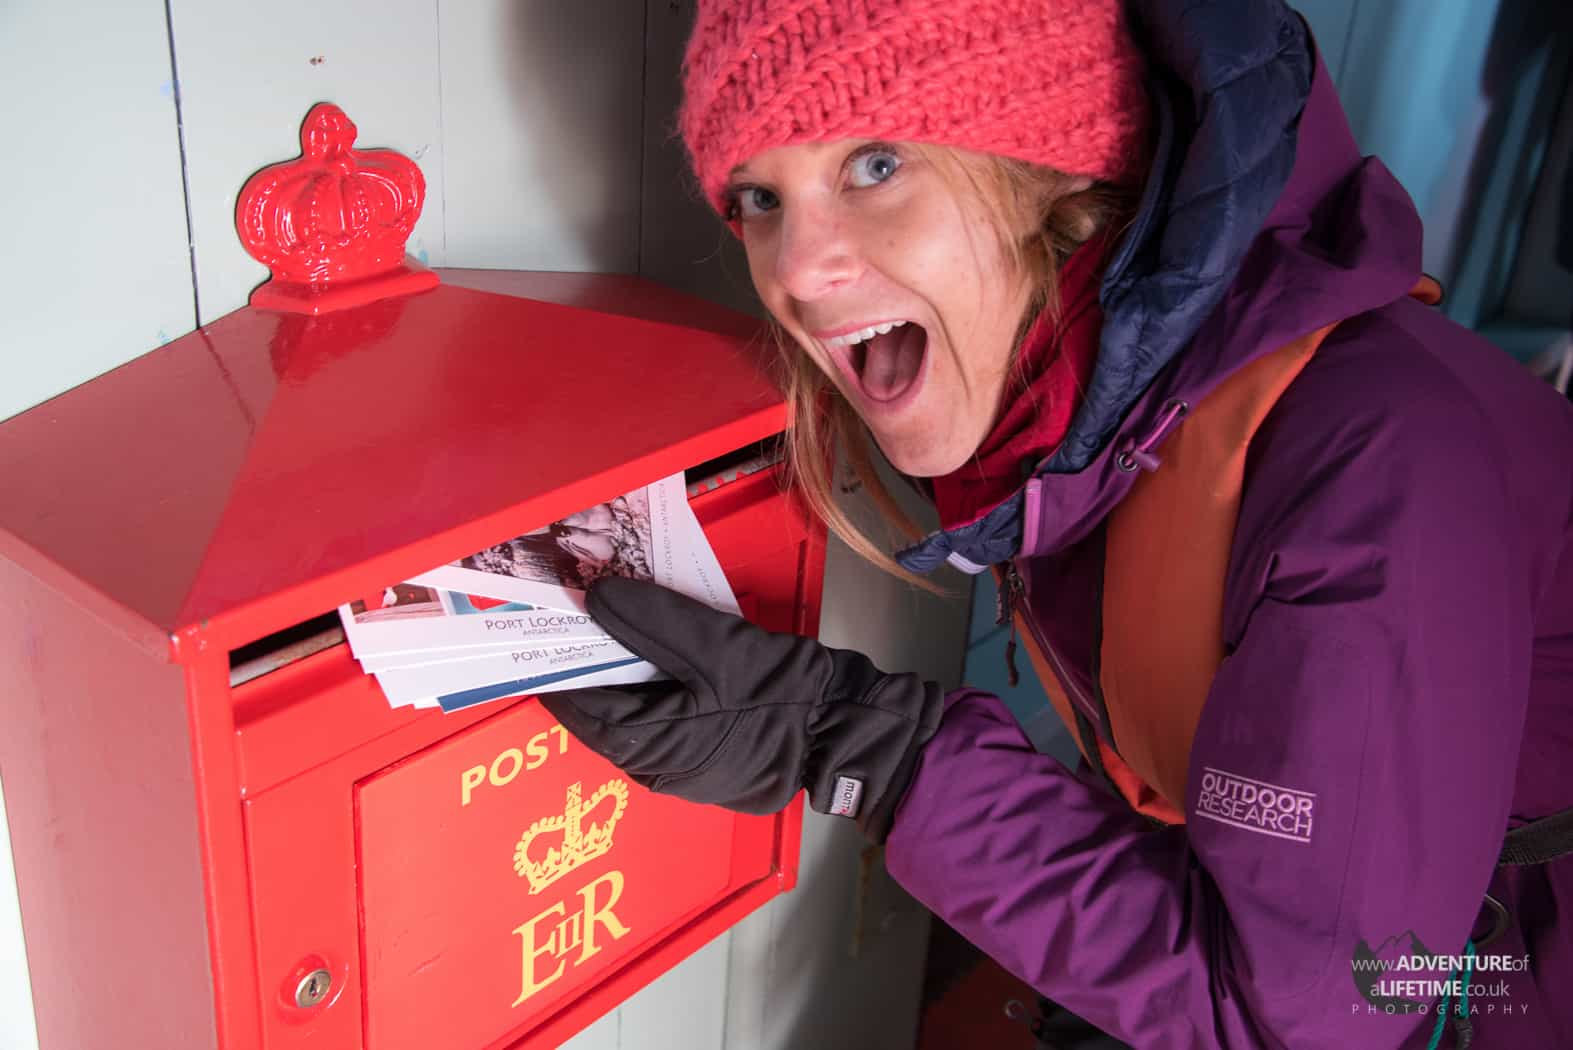 Dora Post Box at Port Lockroy, Antarctica